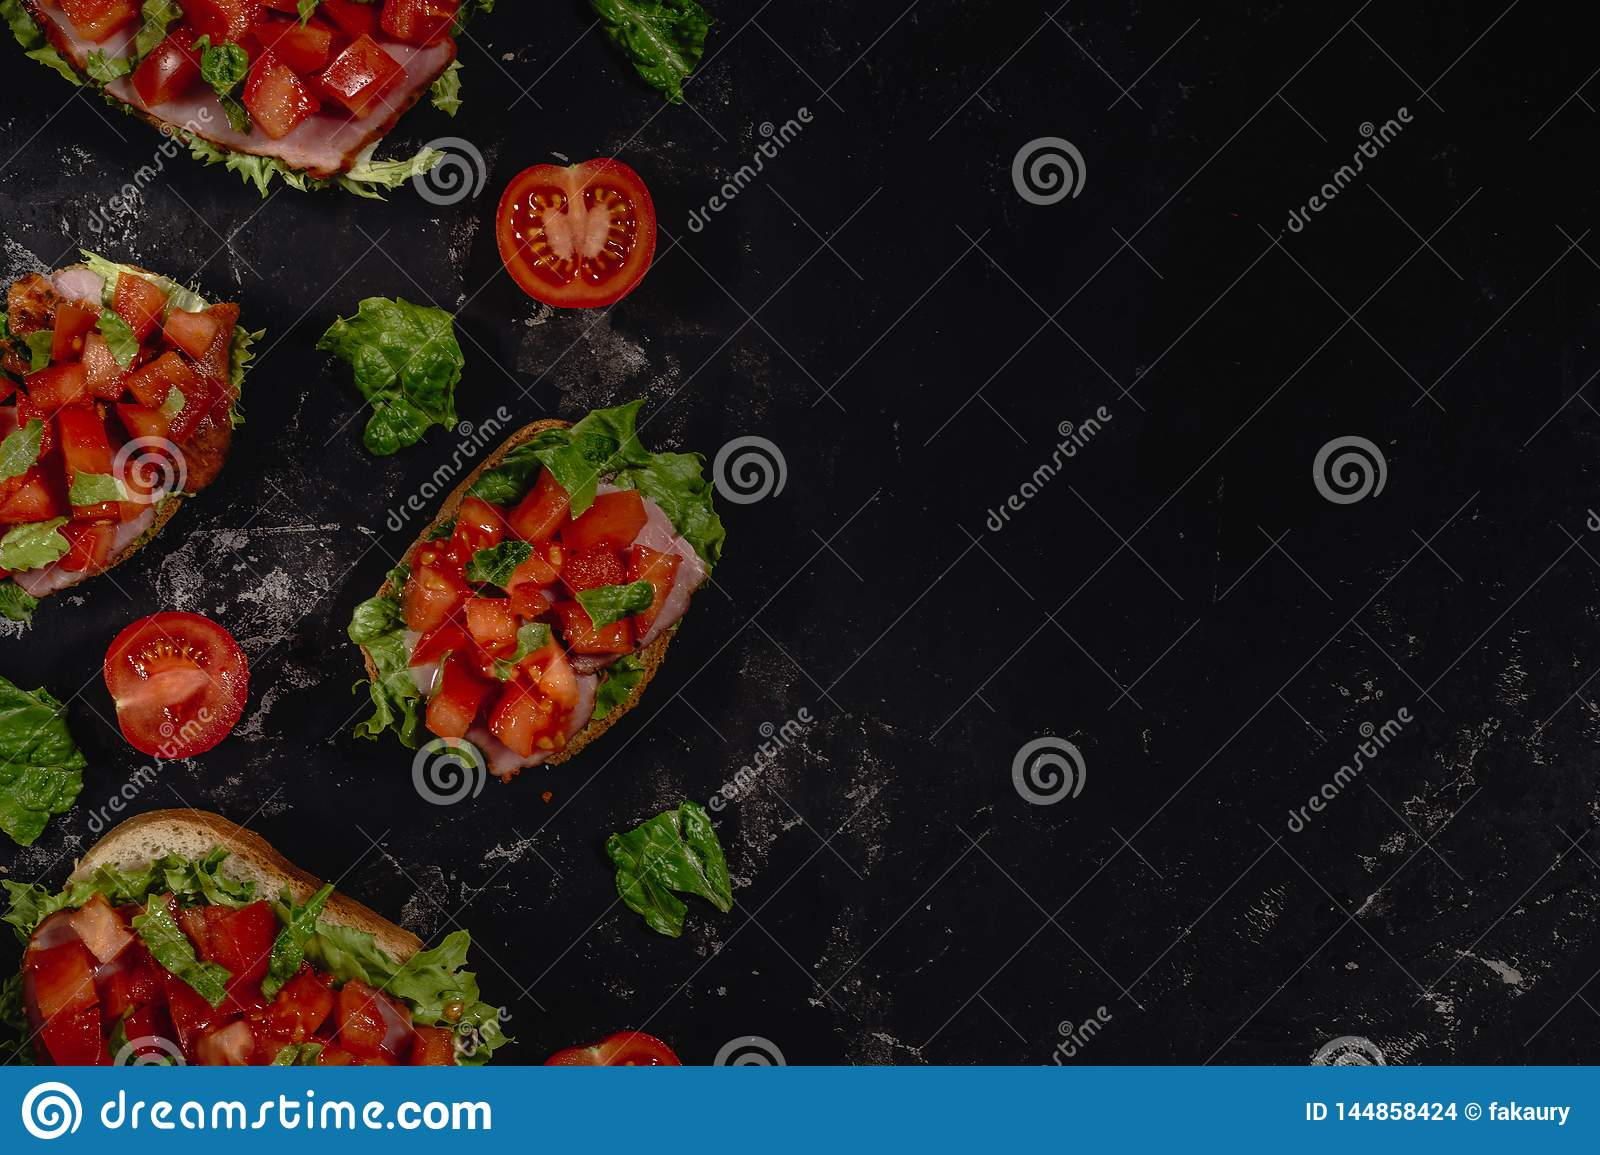 Traditional Italian Bruschetta with chopped tomatoes, mozzarella sauce, salad leaves and ham on a dark baton background.